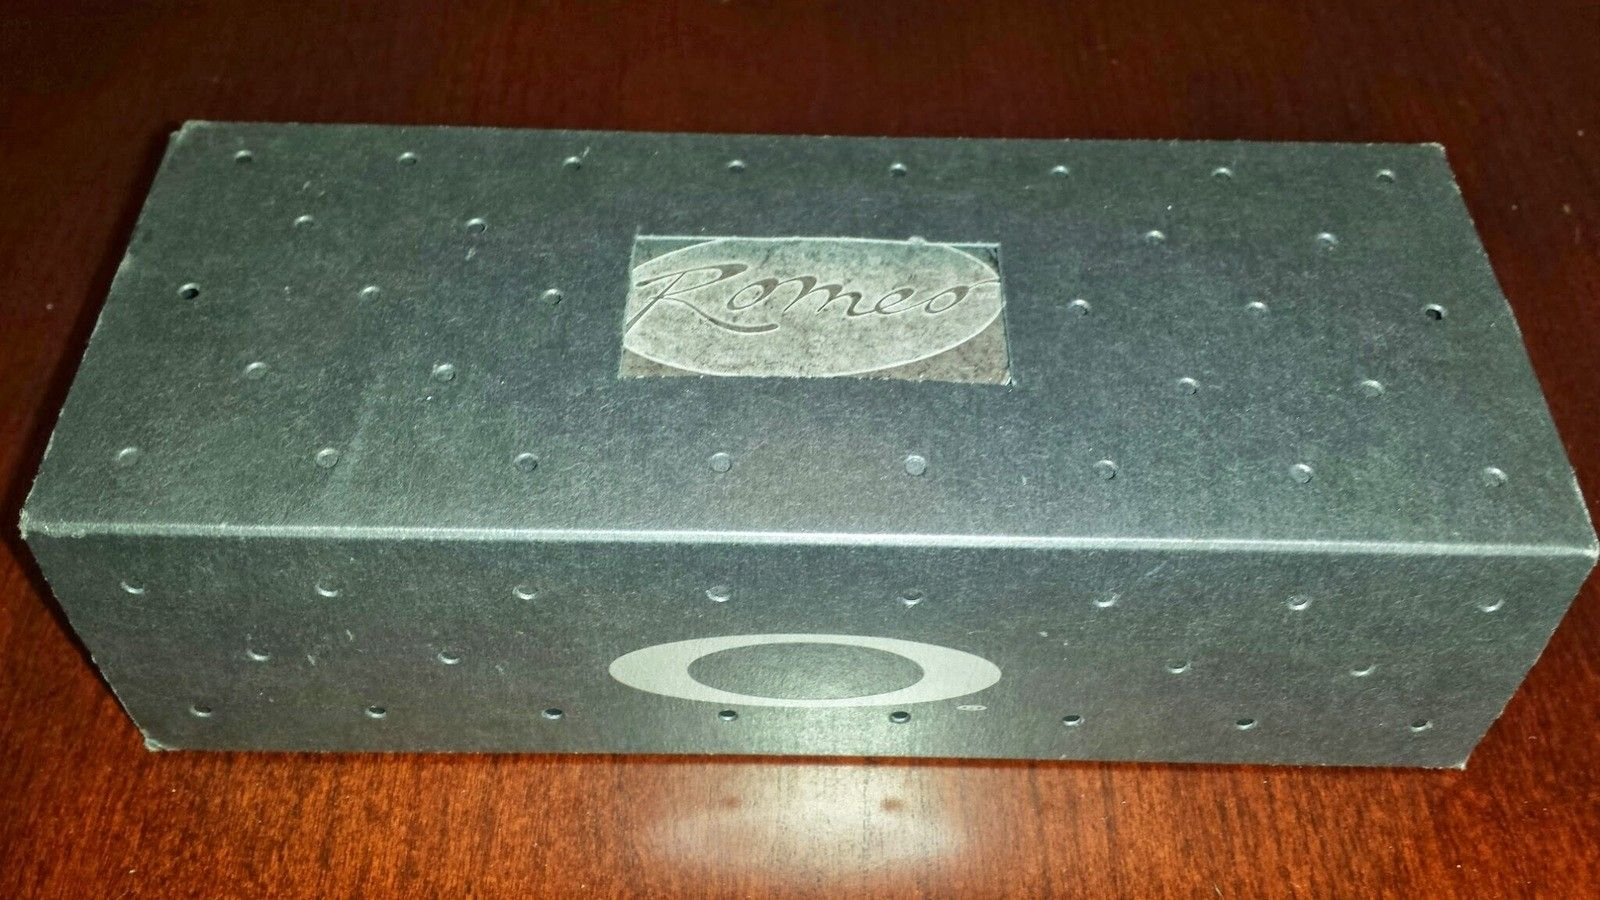 R2 Carbon/BI NIB - MINT, Never Worn - Moved To Other Thread - 20140411_092937.jpg